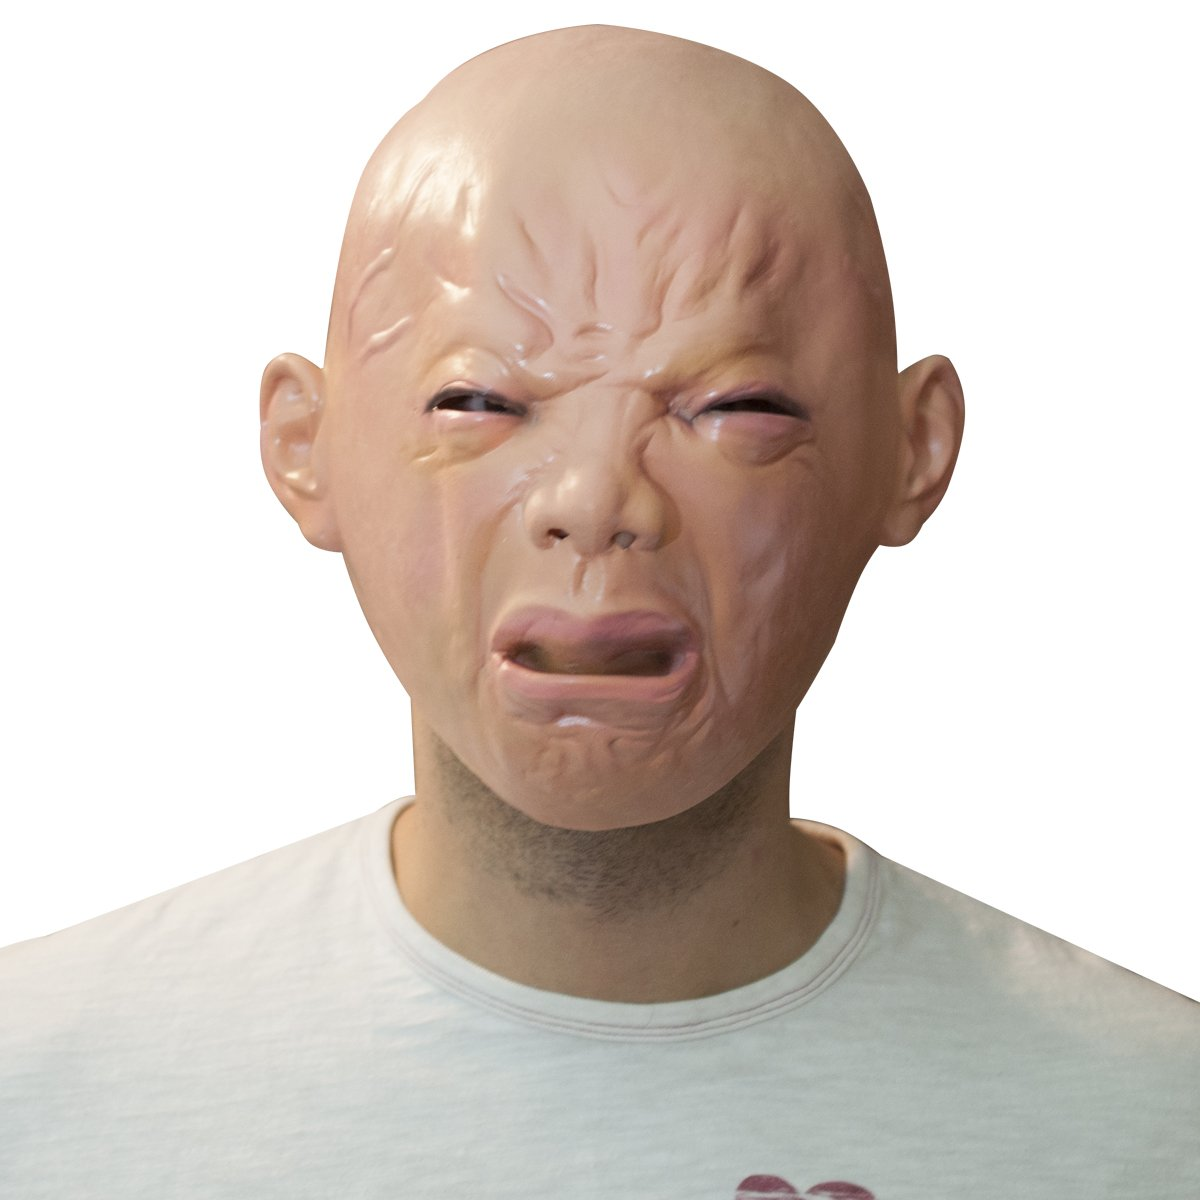 The Mask Biz Crying Ugly Baby Head Funny Mask